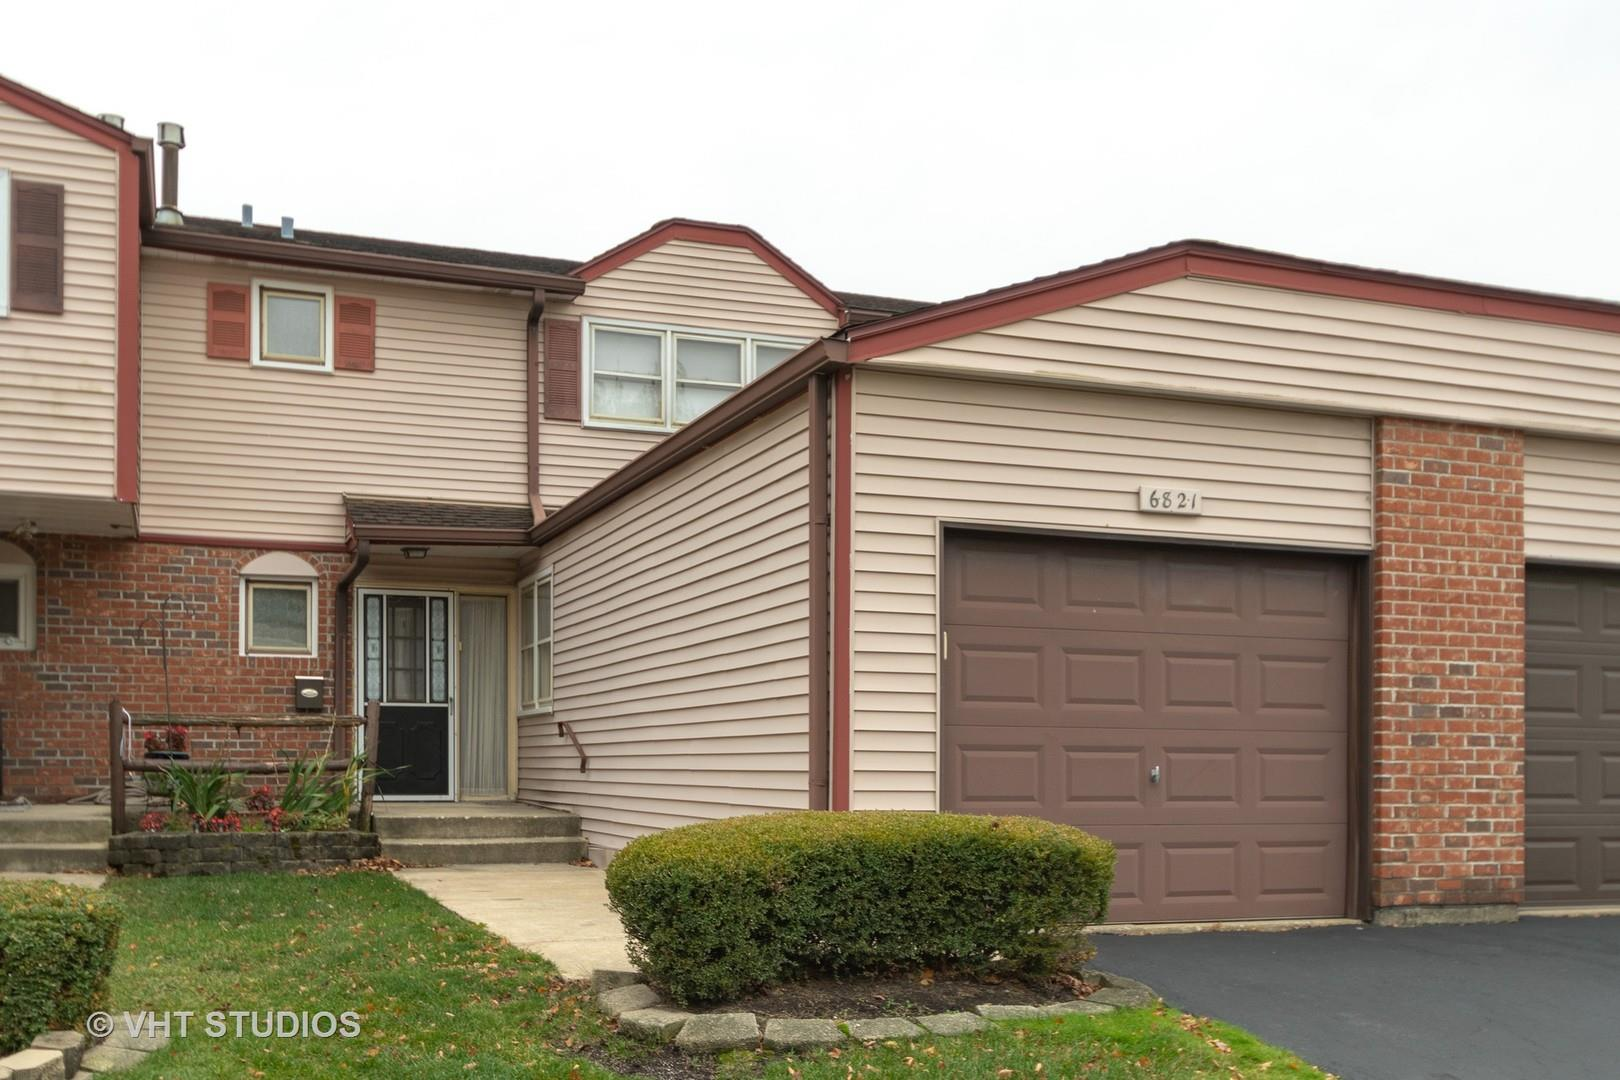 6821 Sussex Road, Tinley Park, IL 60477 - #: 10917751